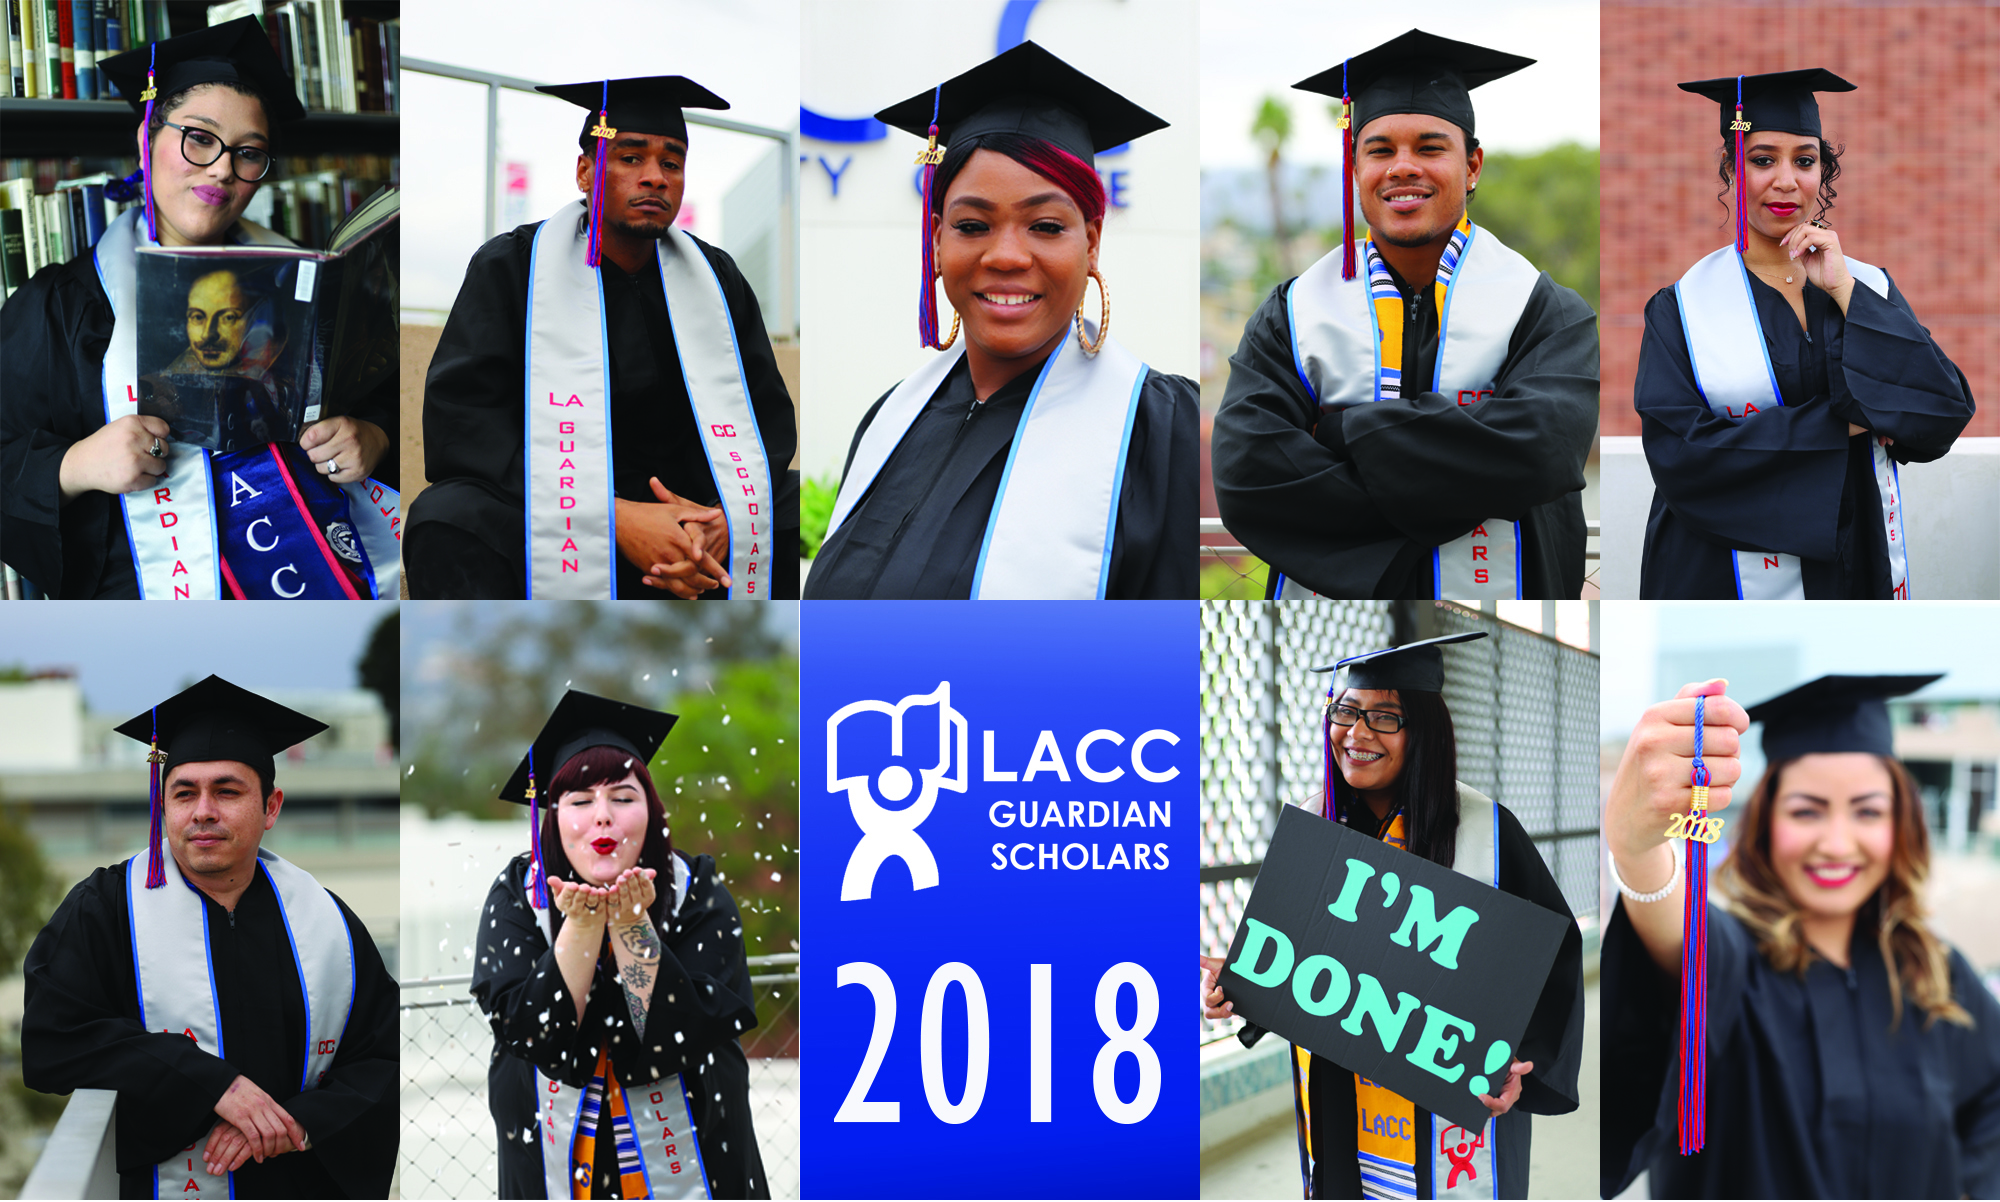 A collage of  9 of LACC Guardian Scholars graduates